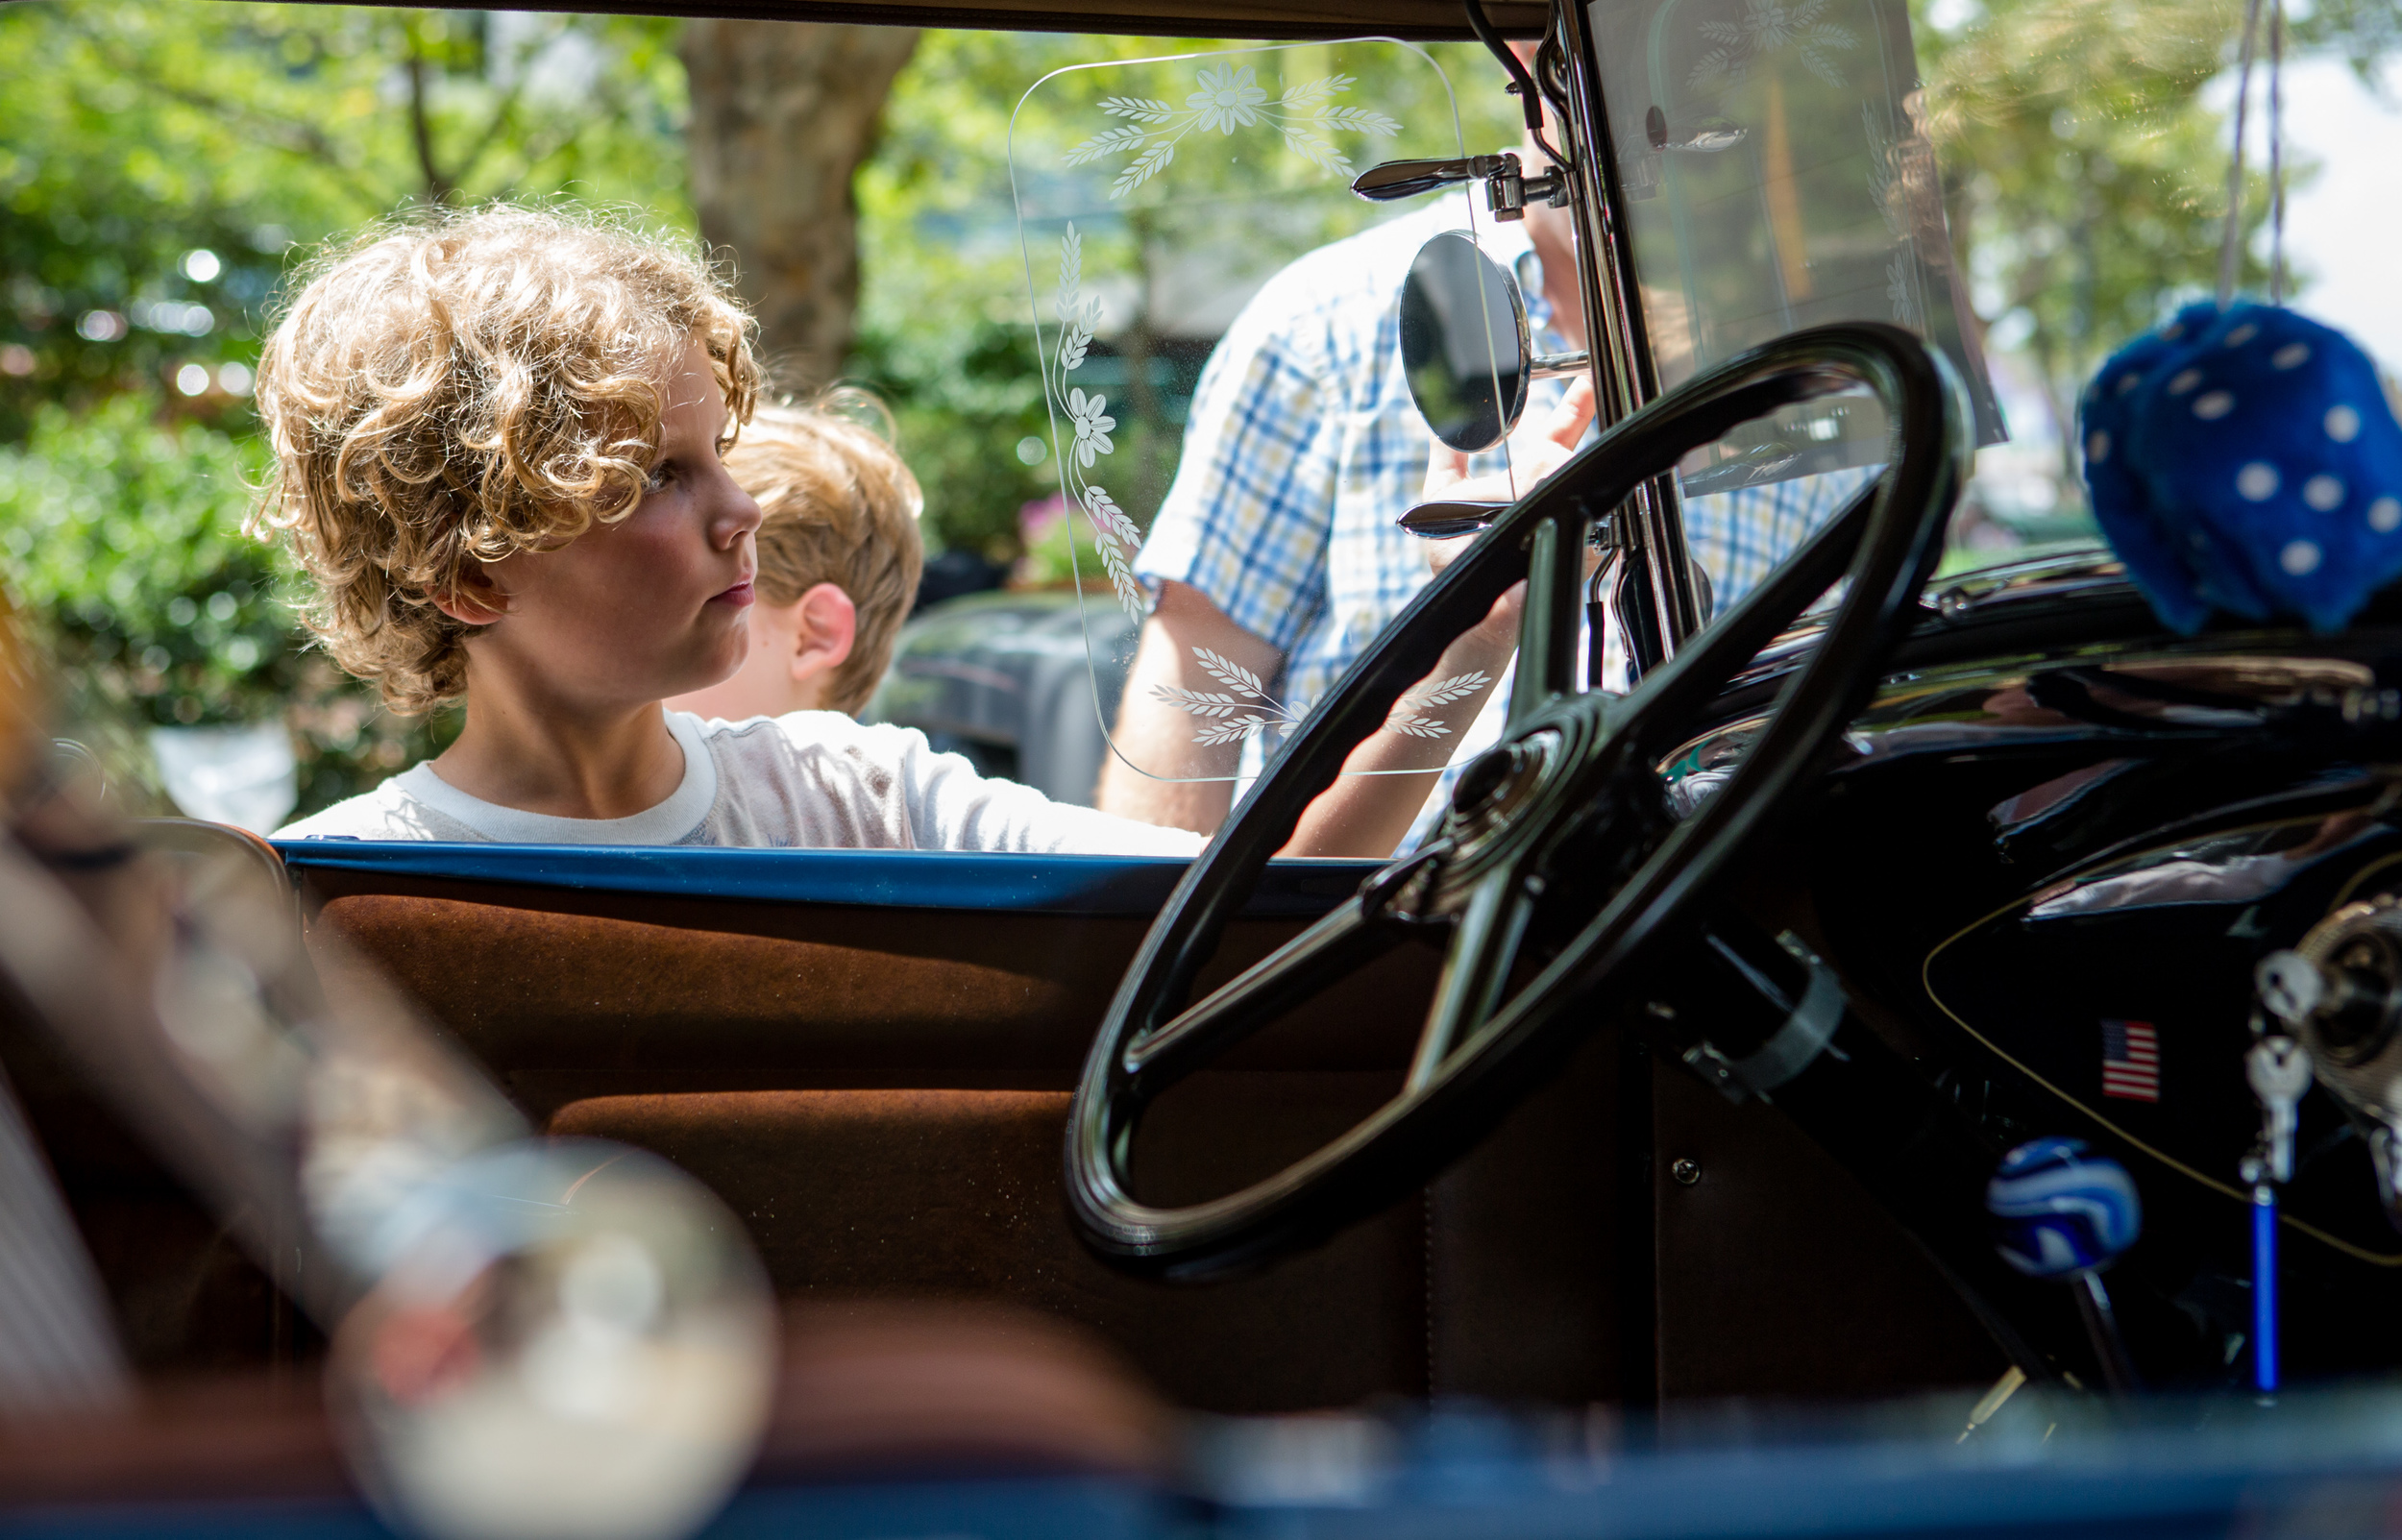 Ben Garthwaite of State College examines the side mirrors on a restored 1930 Ford Deluxe Roadster during the Last Cruise Car Show on Allen Street on Sunday, July 31, 2016